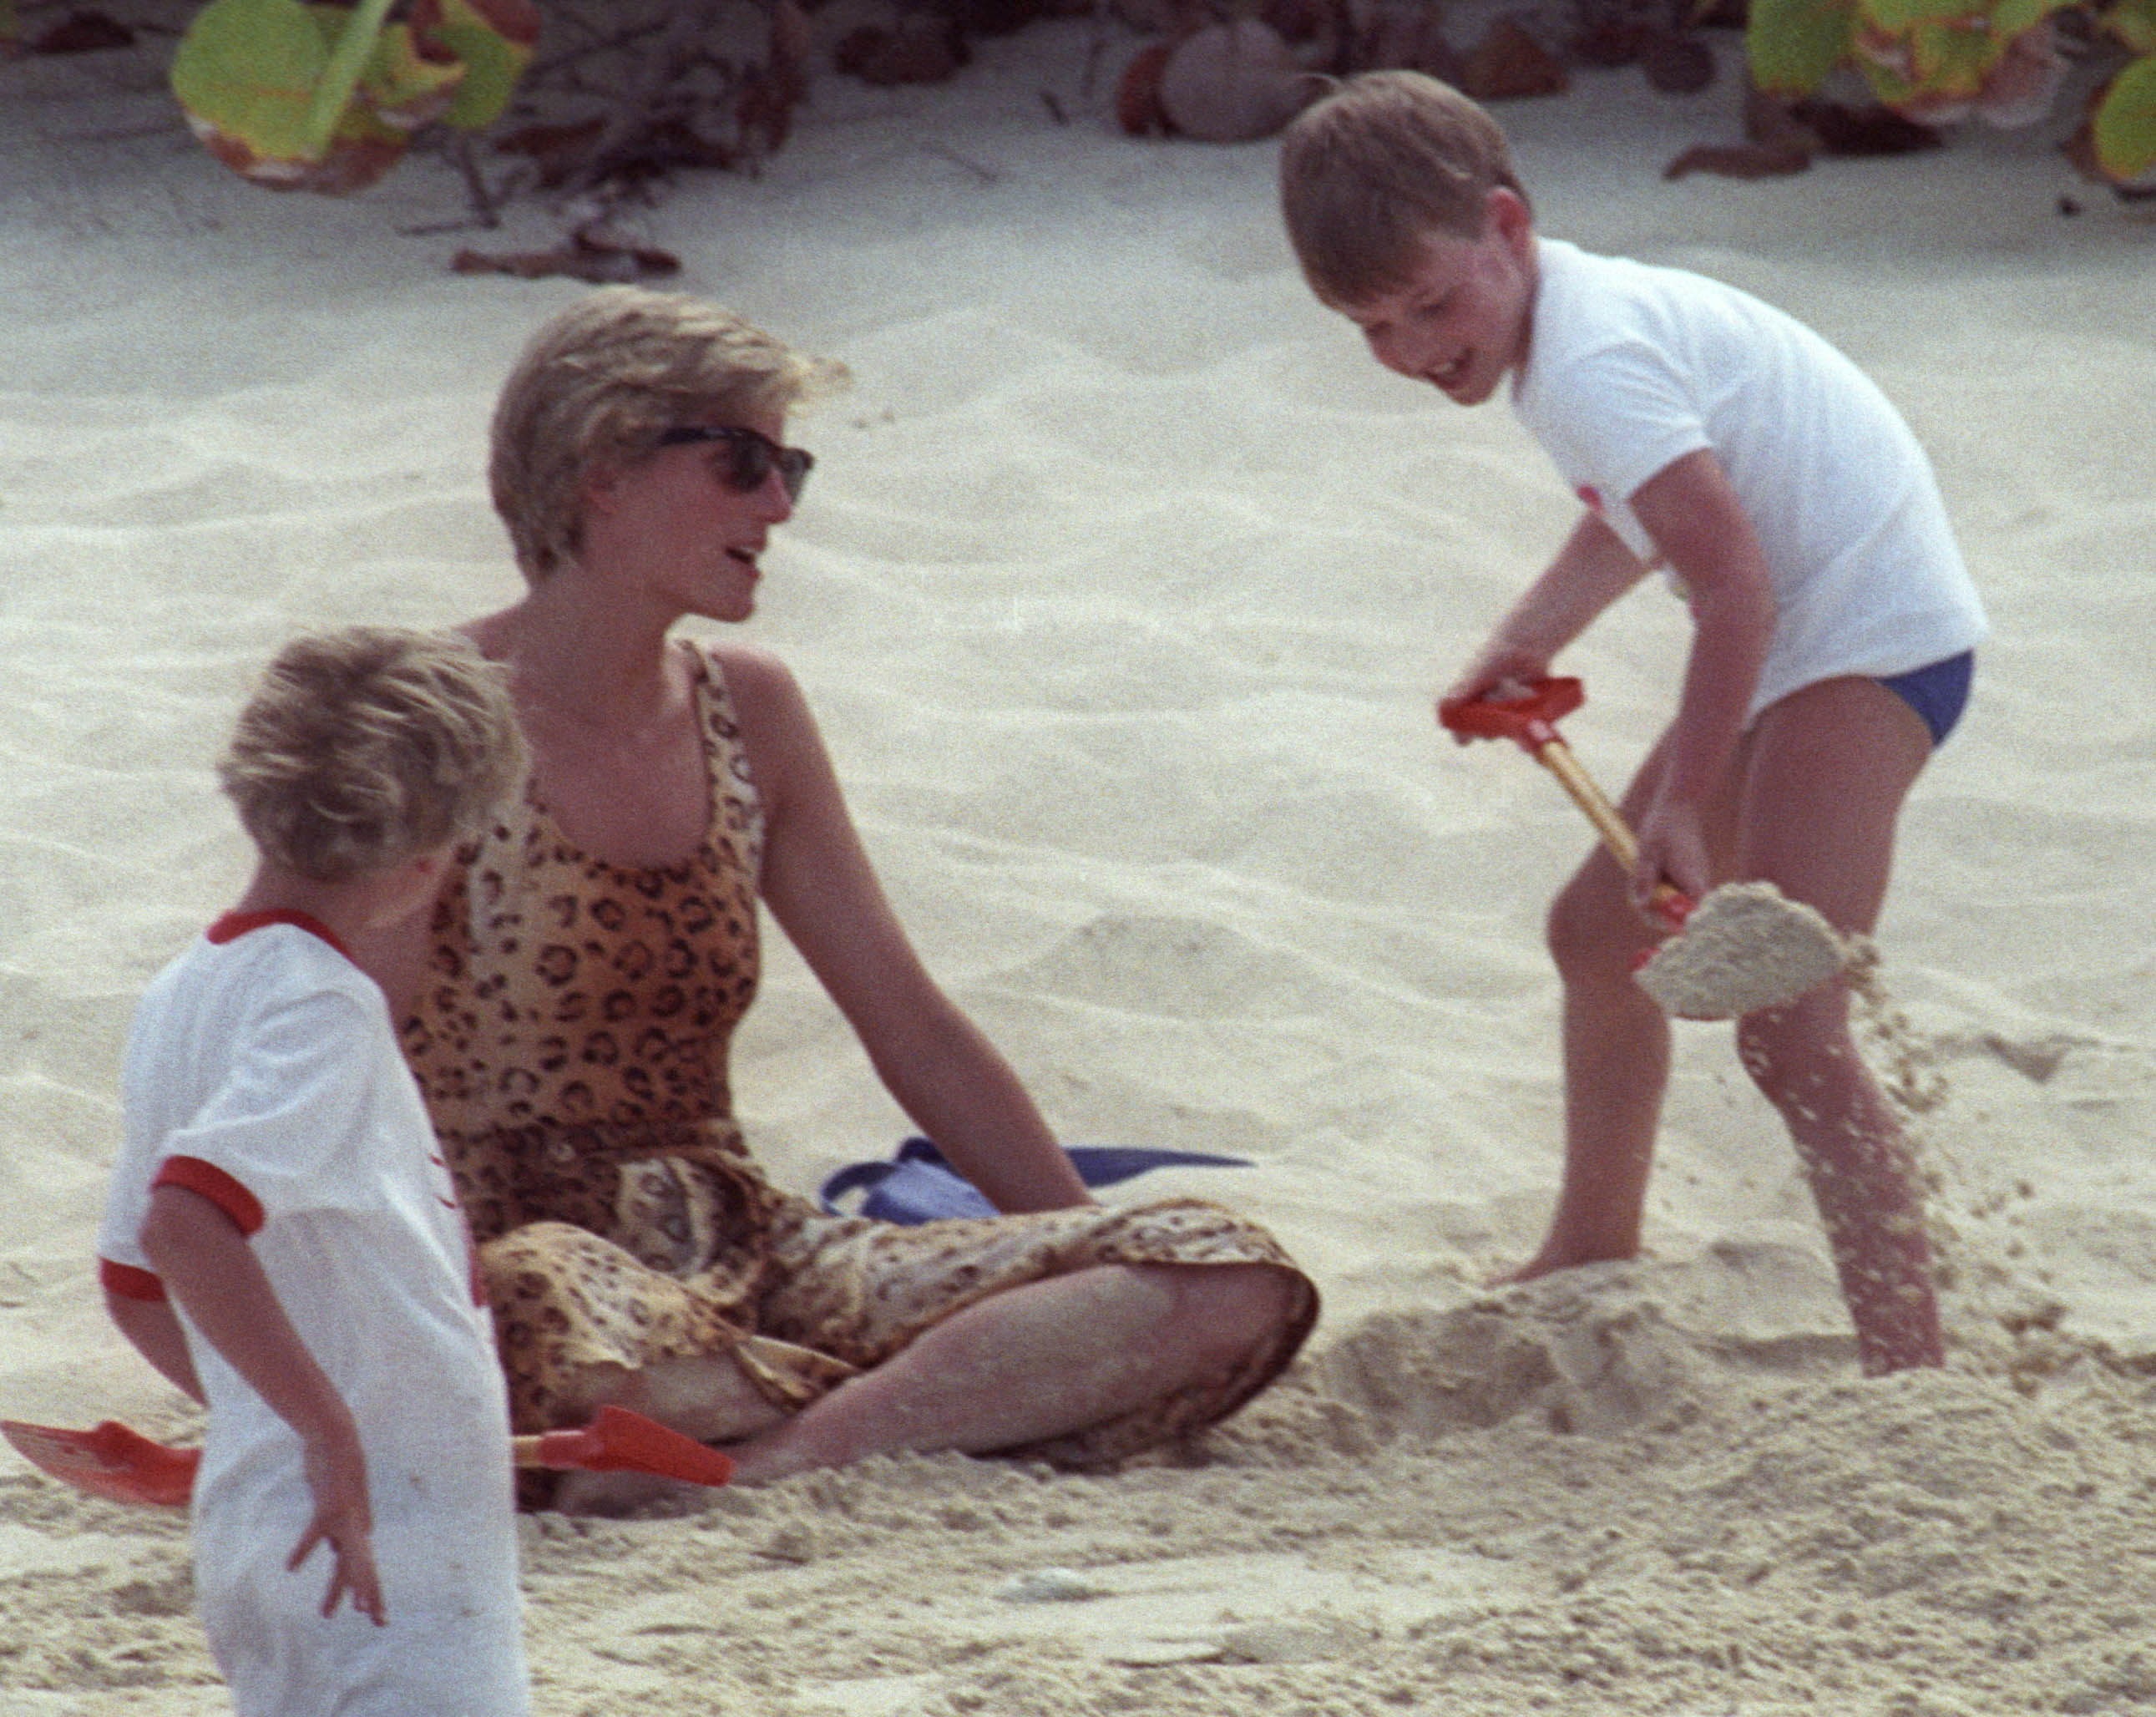 Prince William pours sand on his mother in the British Virgin Islands on April 11, 1990. Photo by Rob Taggart/Reuters